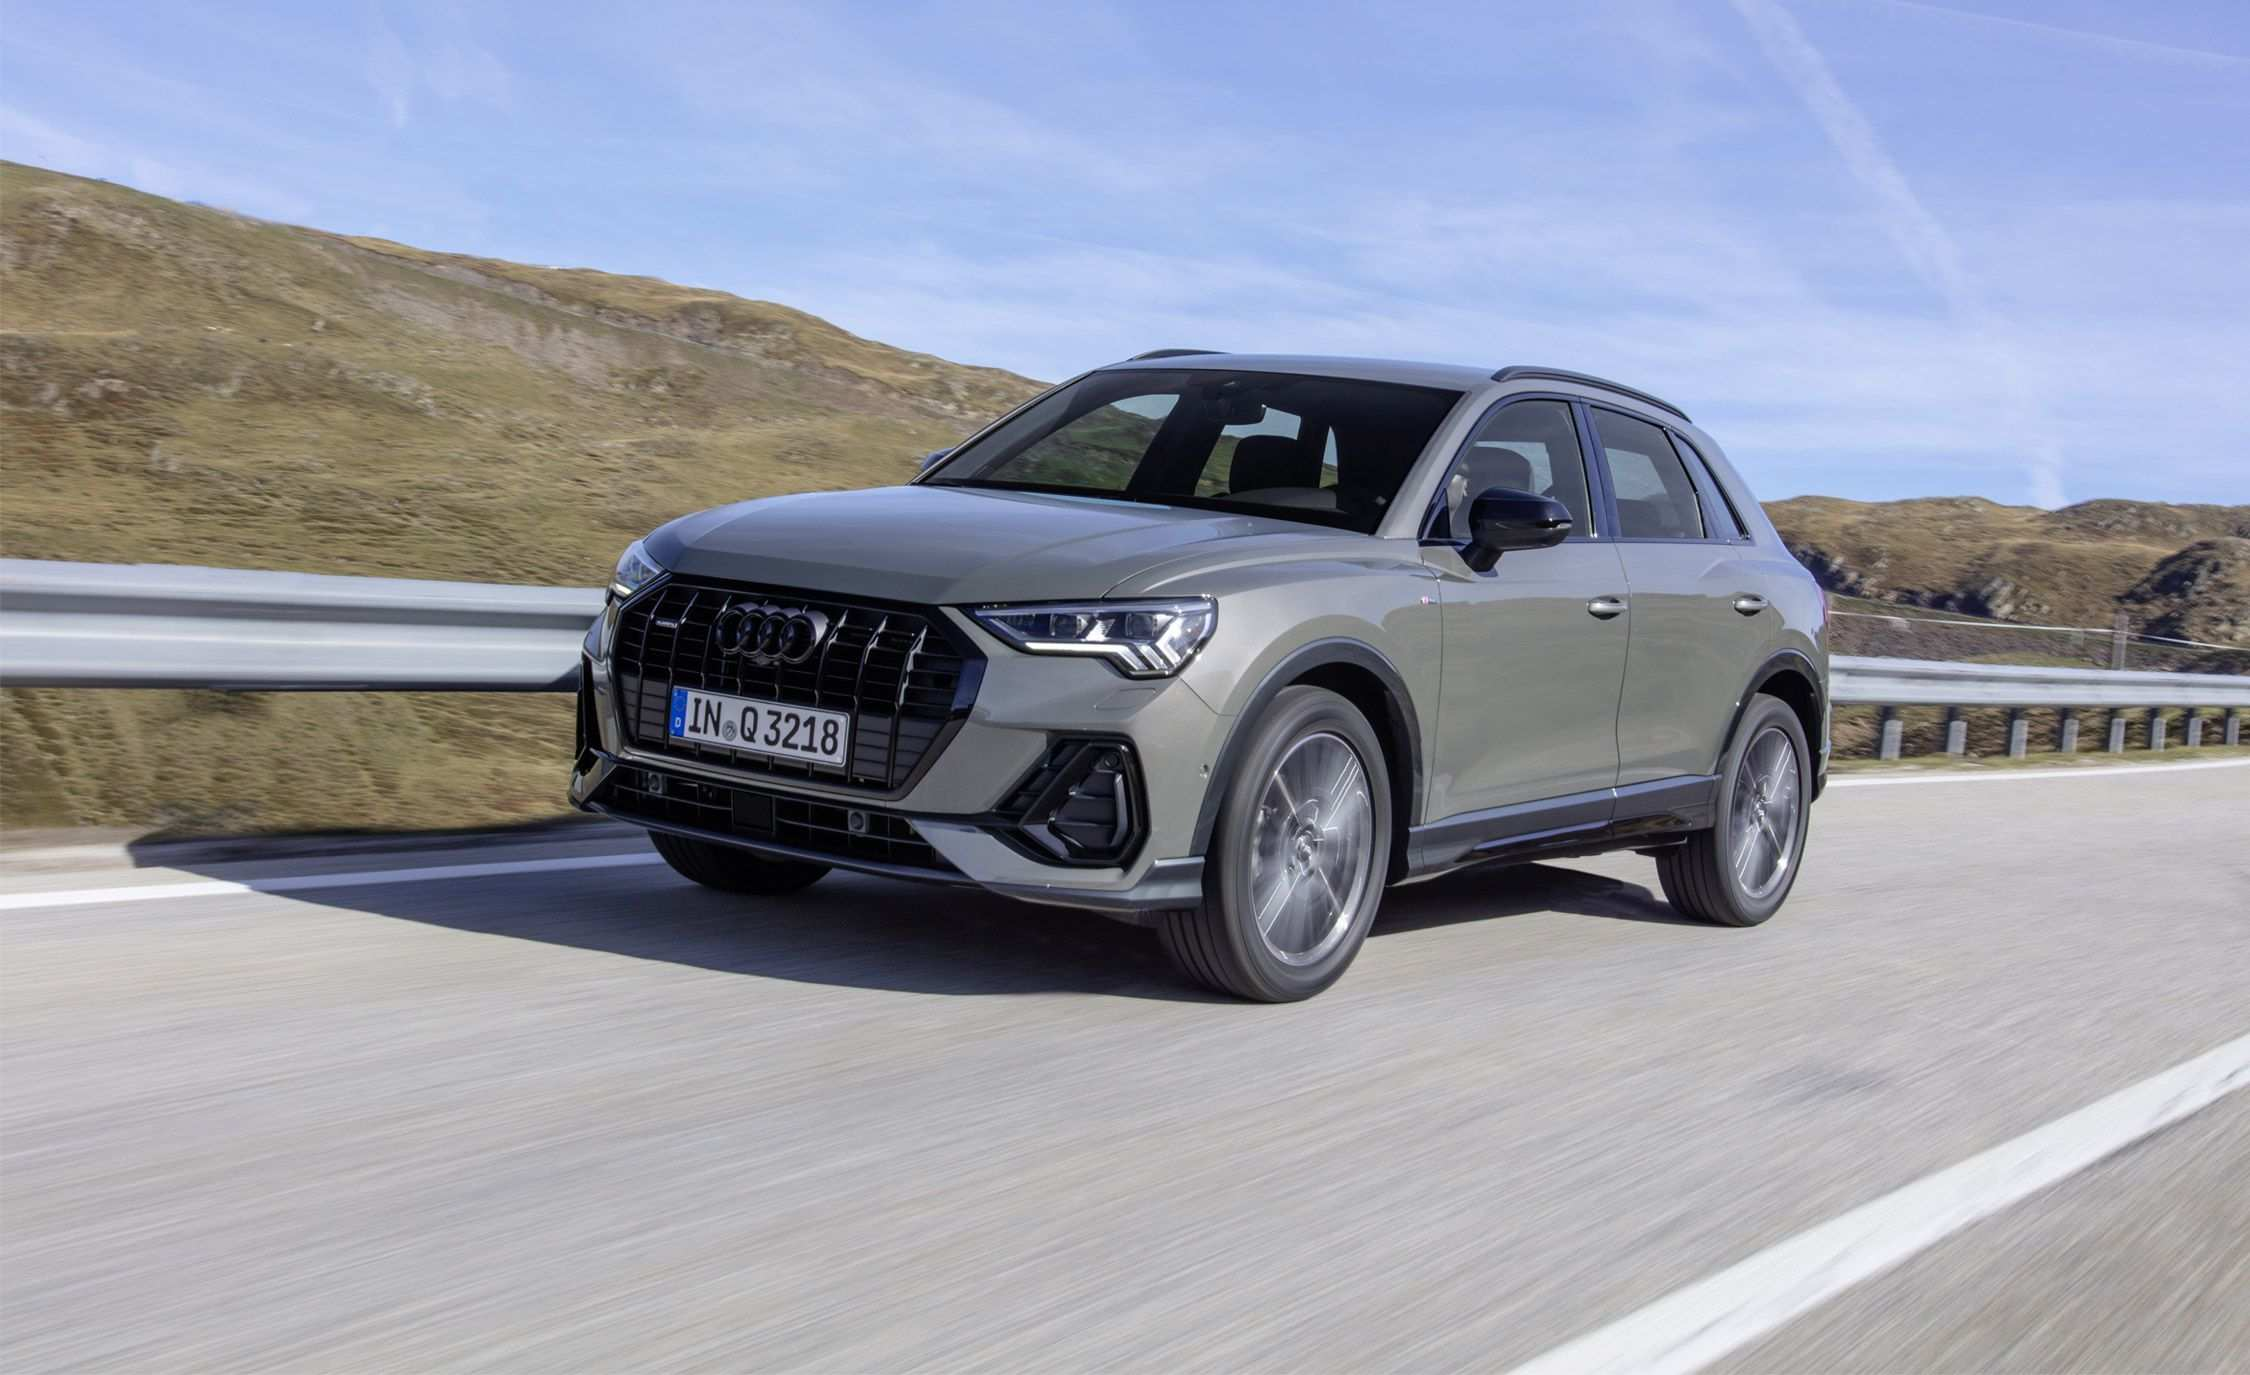 83 Gallery of 2019 Audi Q3 Release Date Speed Test with 2019 Audi Q3 Release Date